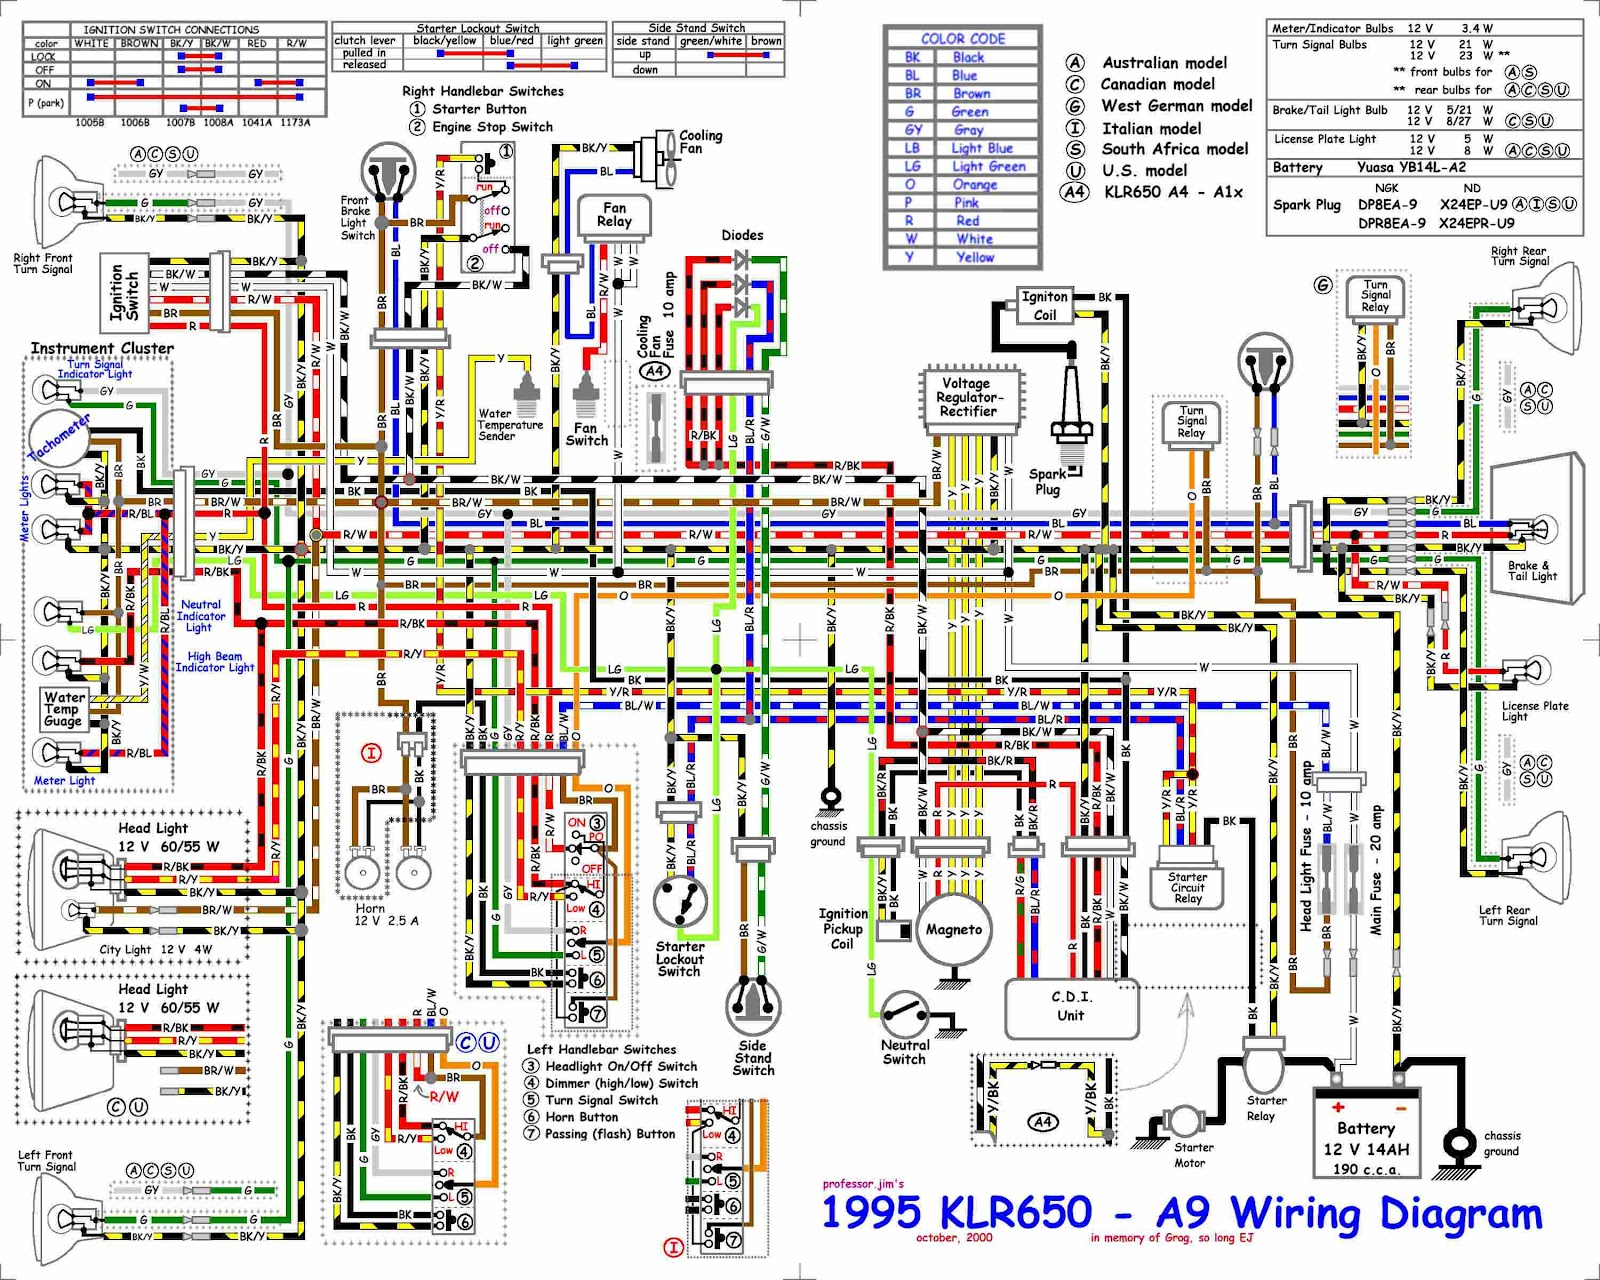 Kawasaki Ex500 Turn Signal Wiring Diagram Trusted Diagrams Motorcycle On Lights Klr 250 1986 Diy Enthusiasts U2022 Kz650